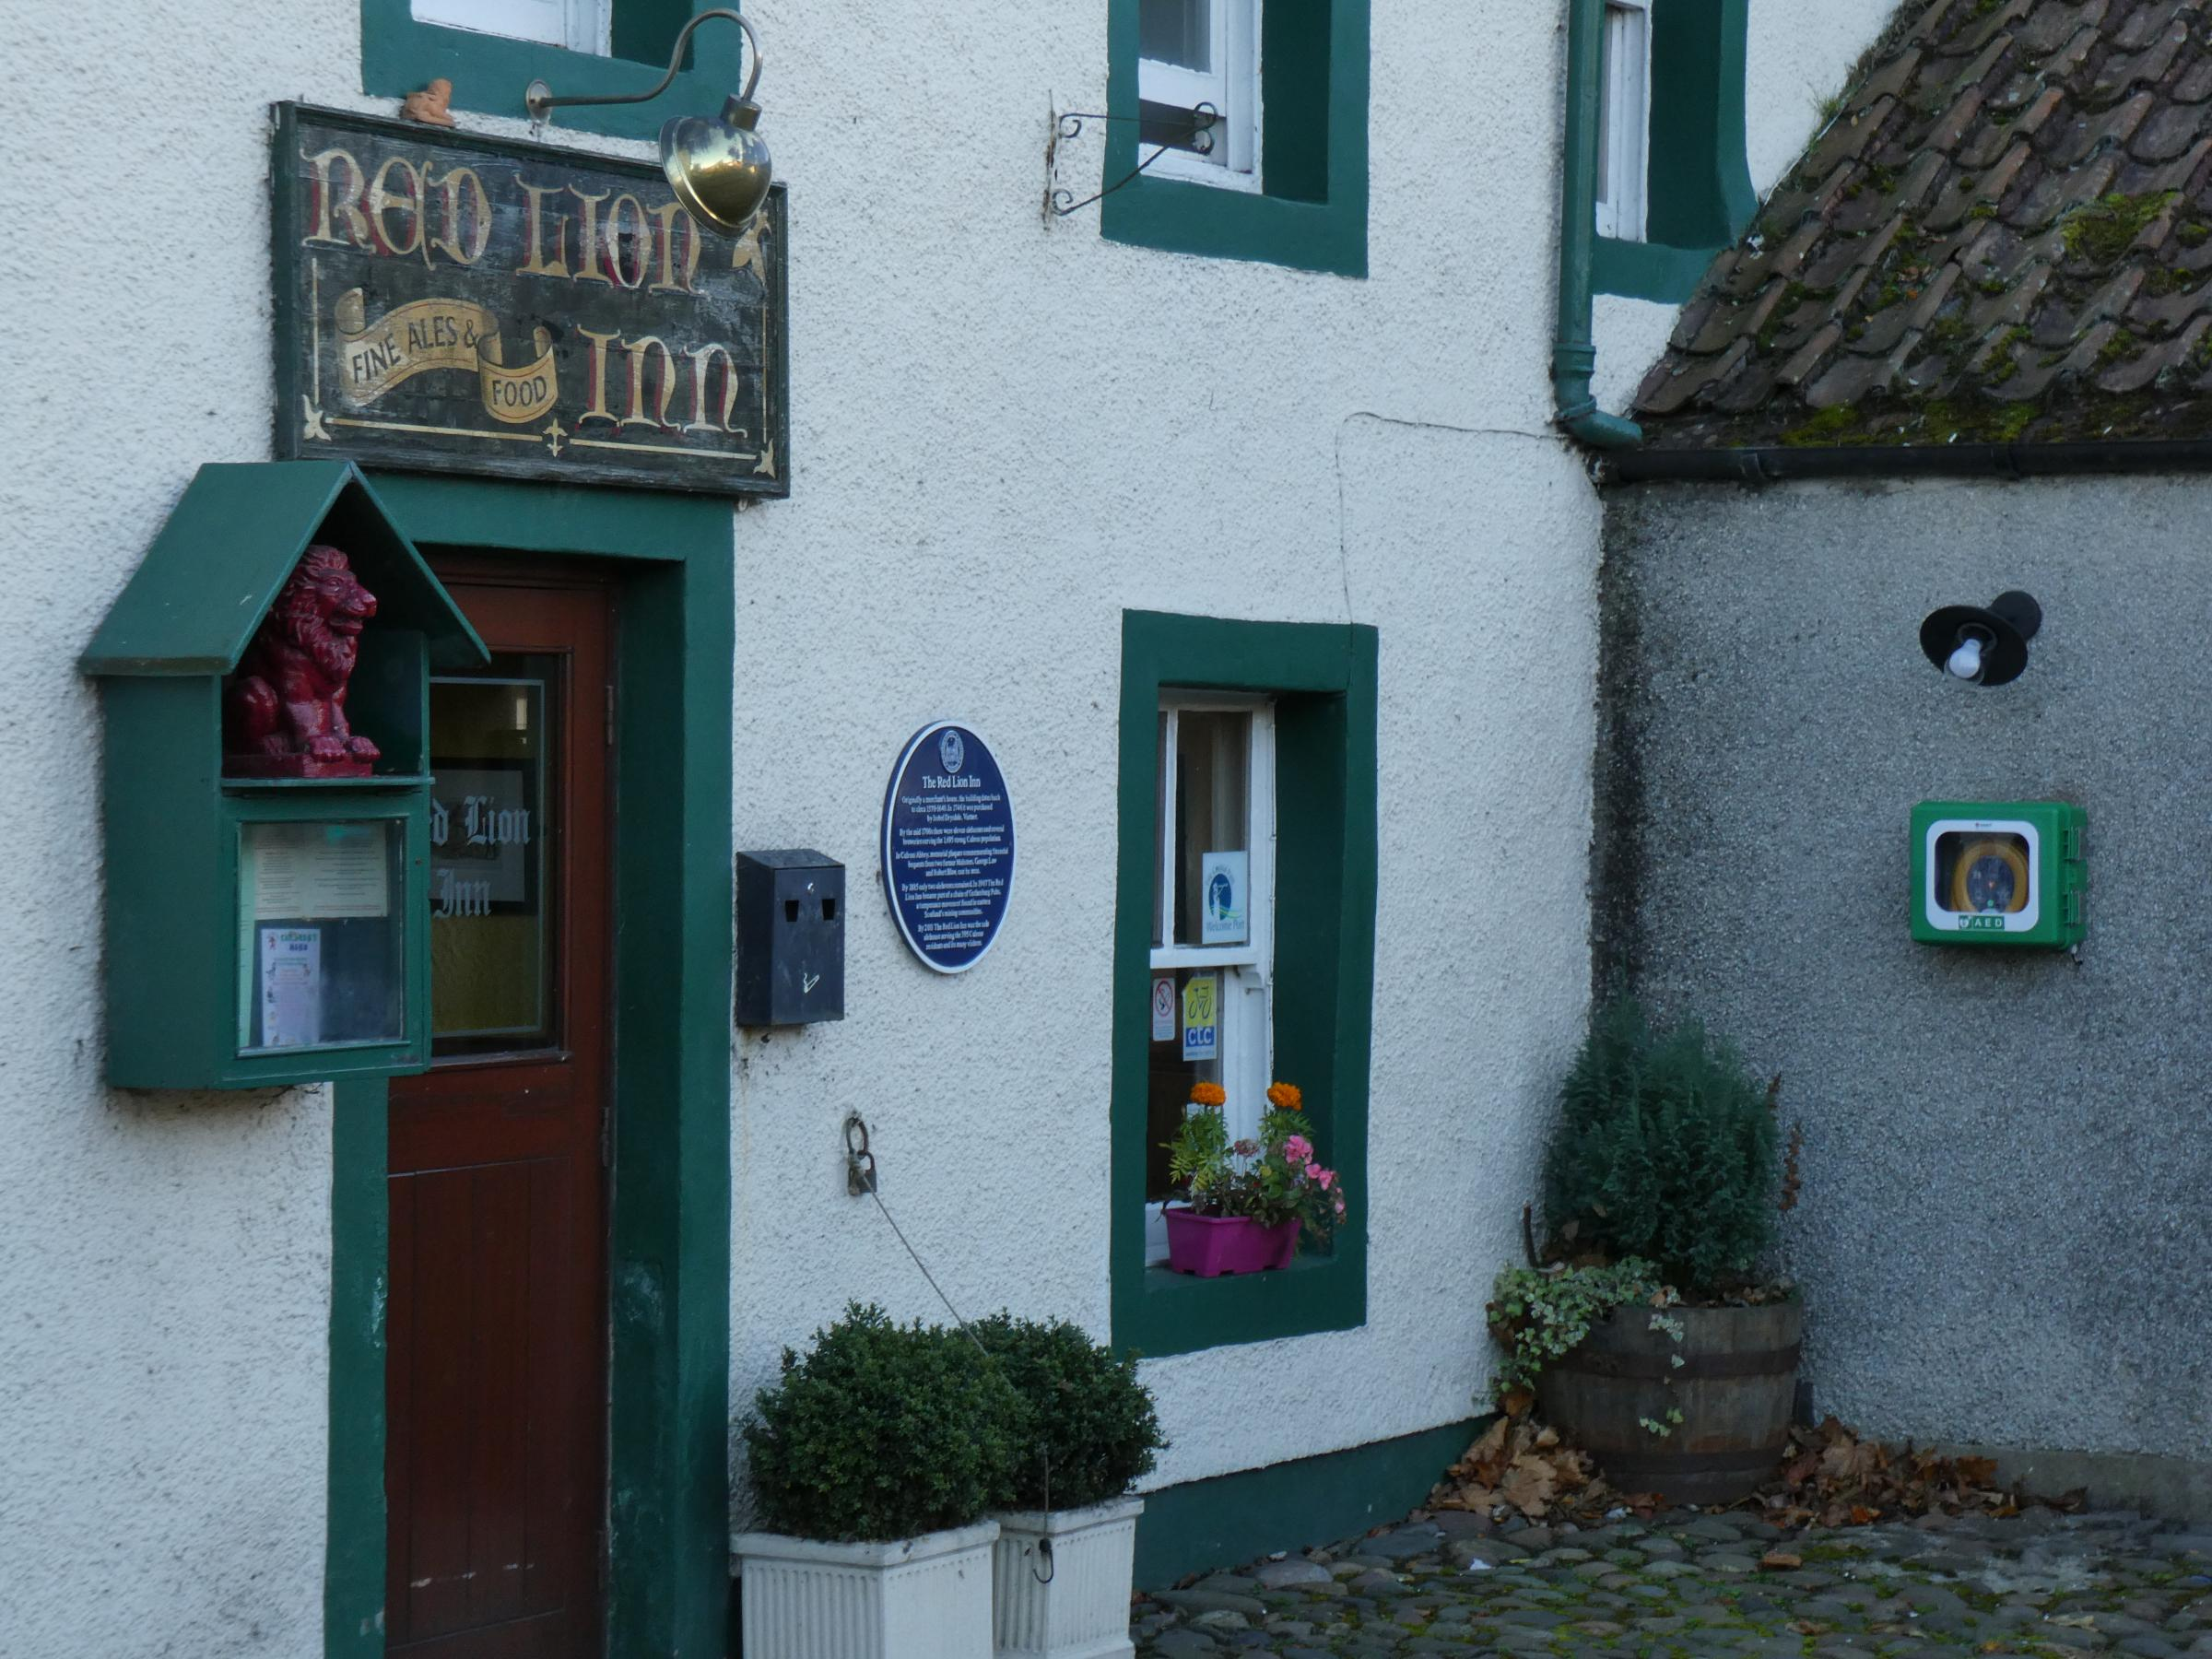 A defibrillator has been installed on the wall at the Red Lion pub in Culross.